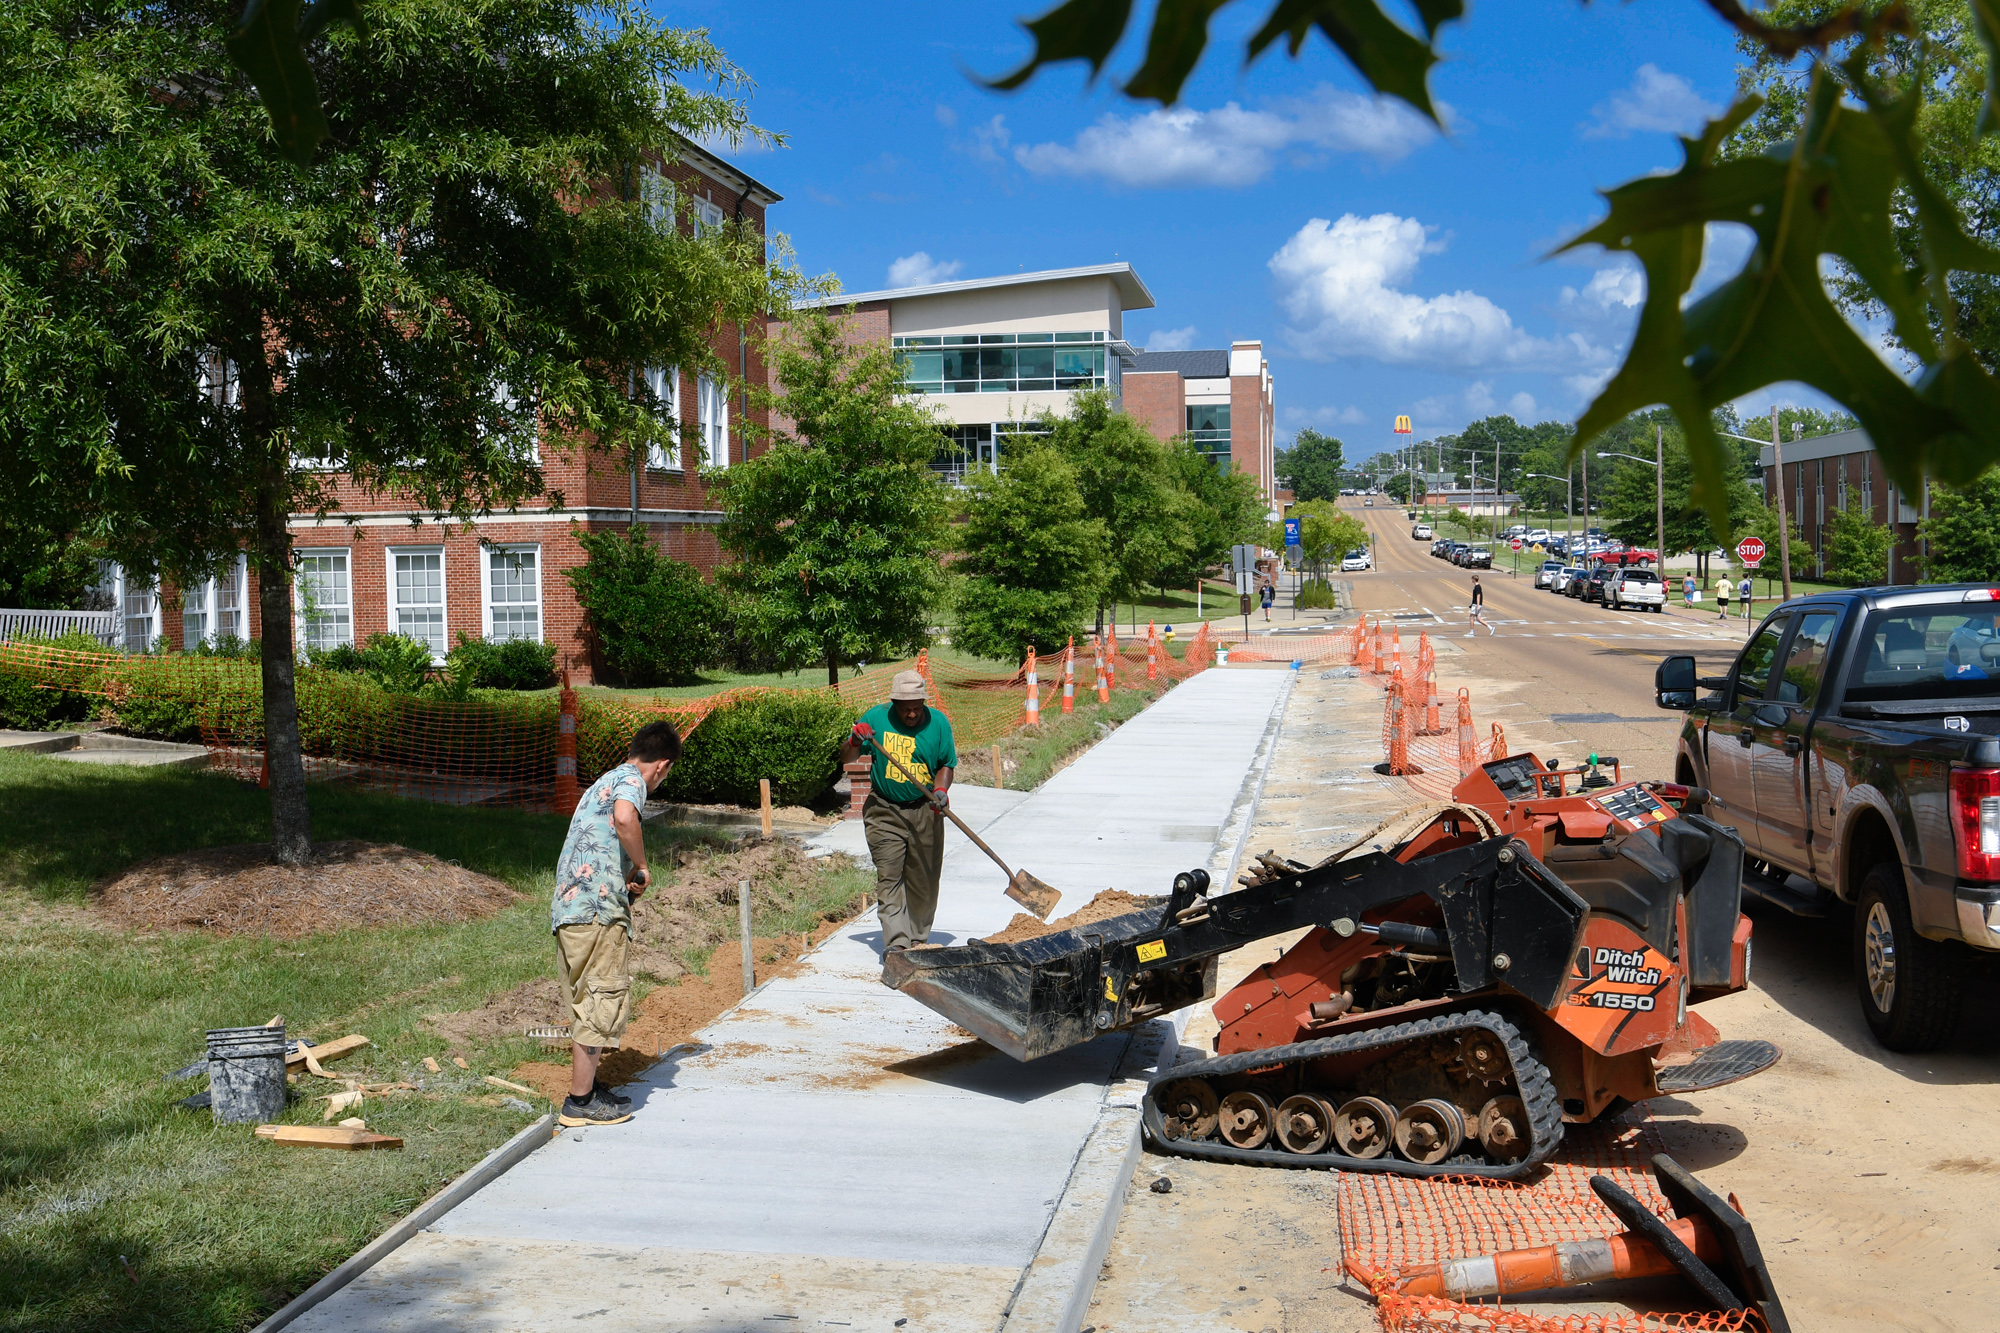 Construction workers shovel dirt to fill in the gaps around newly poured concrete walkways in front of Bogard Hall.